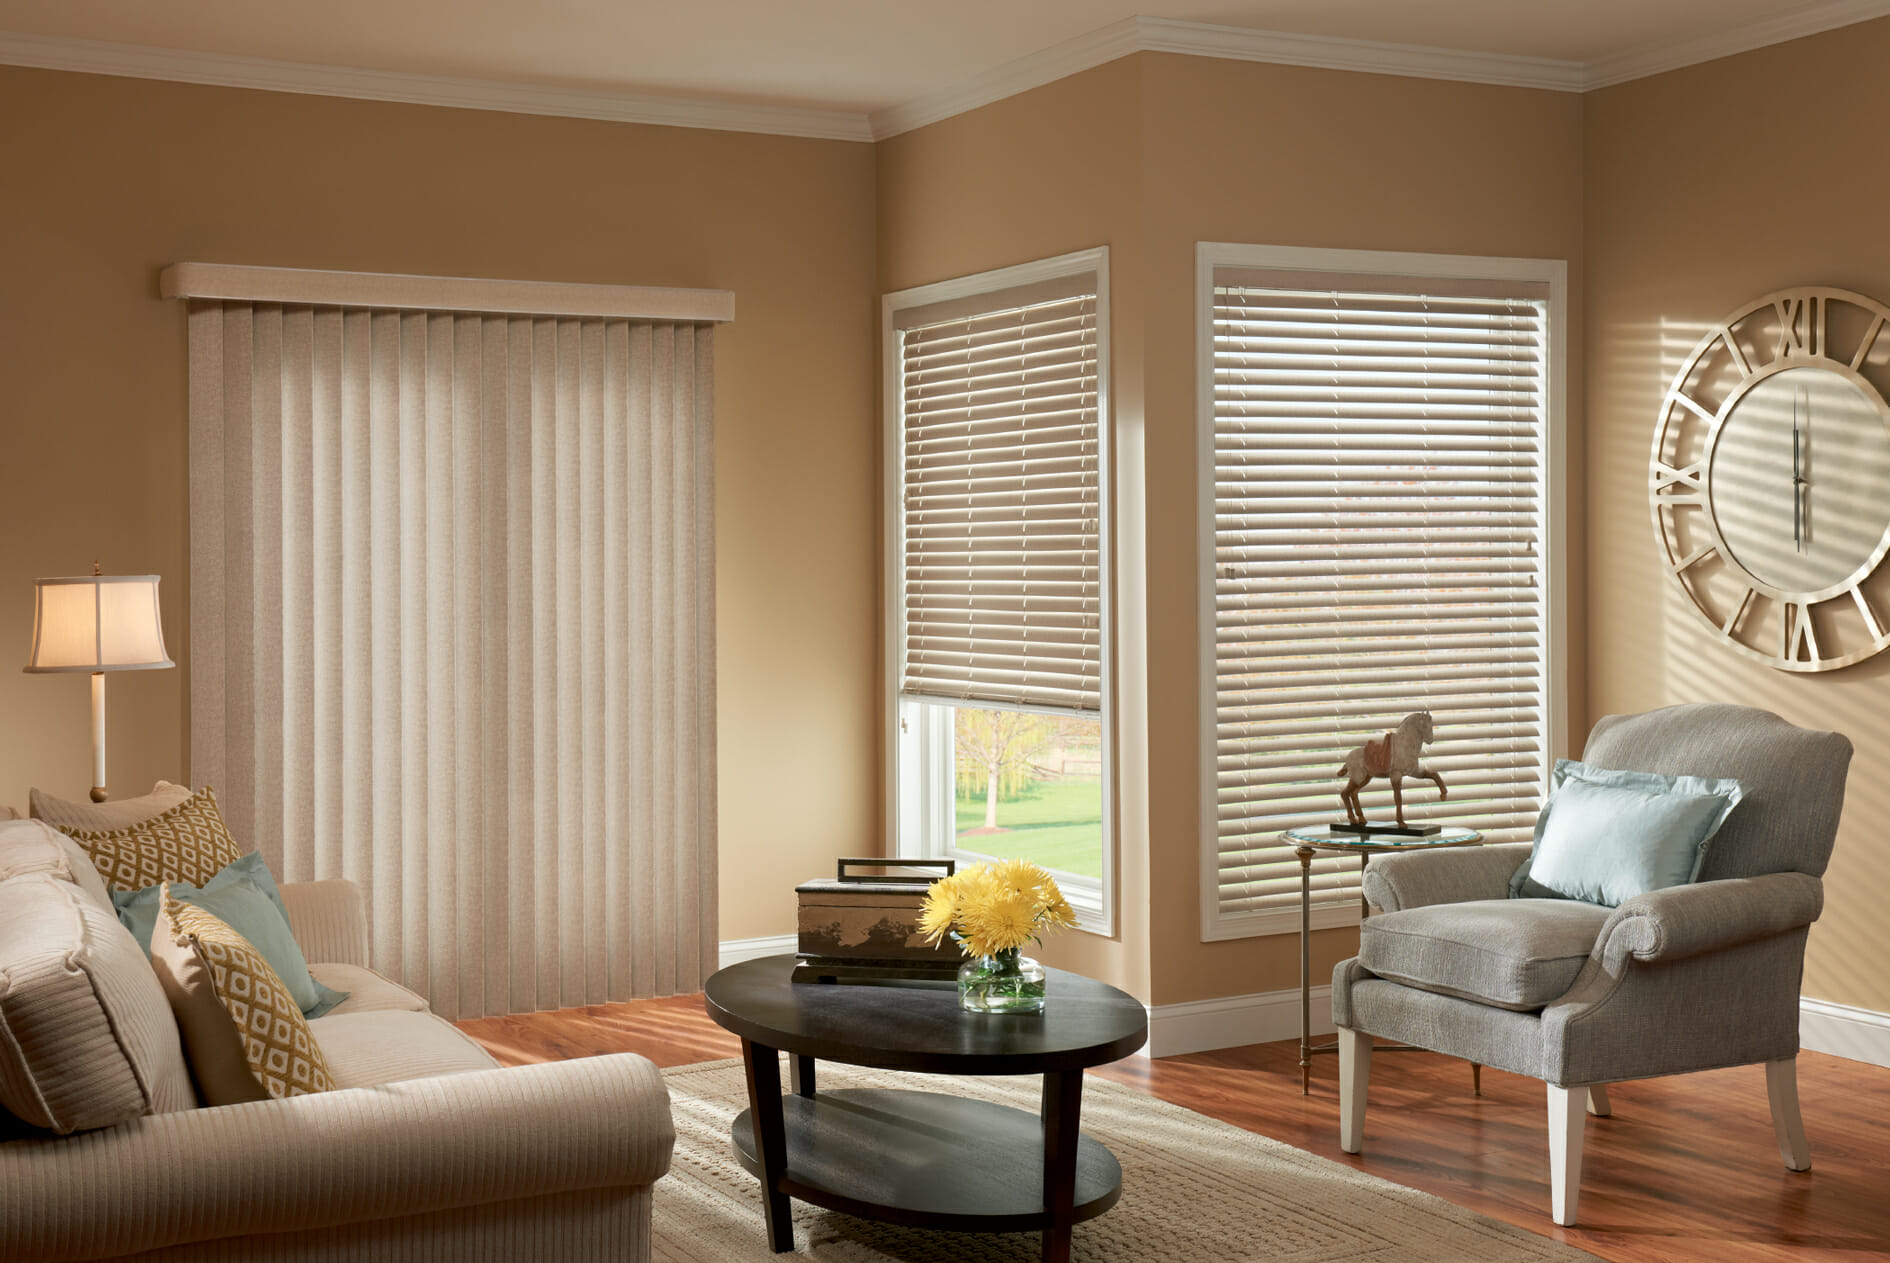 window coverings for large living room indian inspired design vertical blinds - 3 blind mice